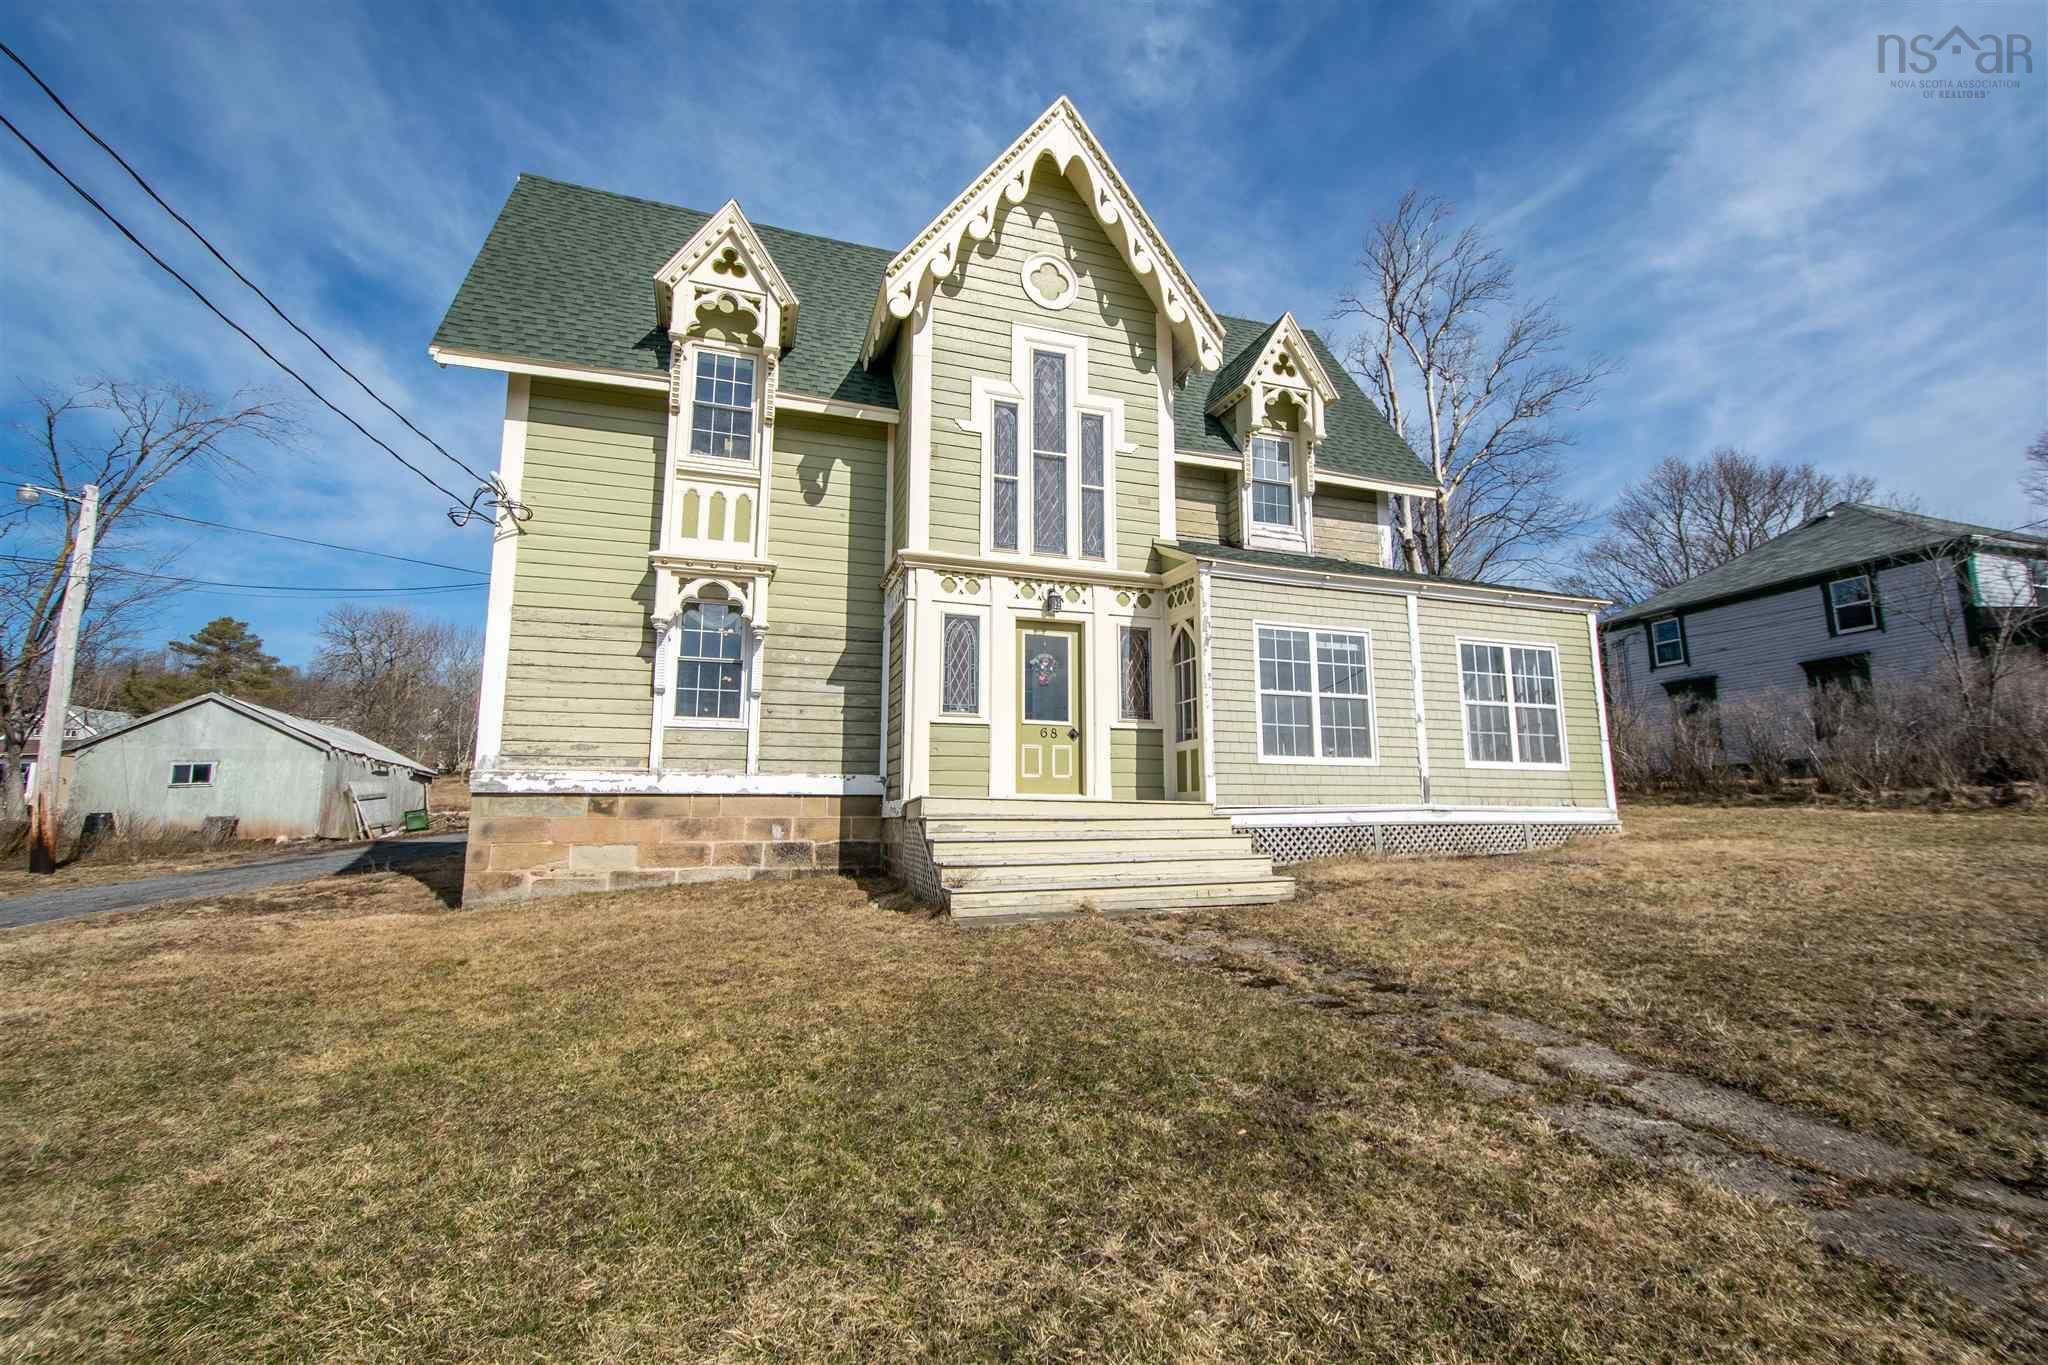 68 Front Street, Pictou, Pictou, NS, United States B0K 1H0, 5 Bedrooms Bedrooms, ,5 BathroomsBathrooms,For Sale,68 Front Street,202108631